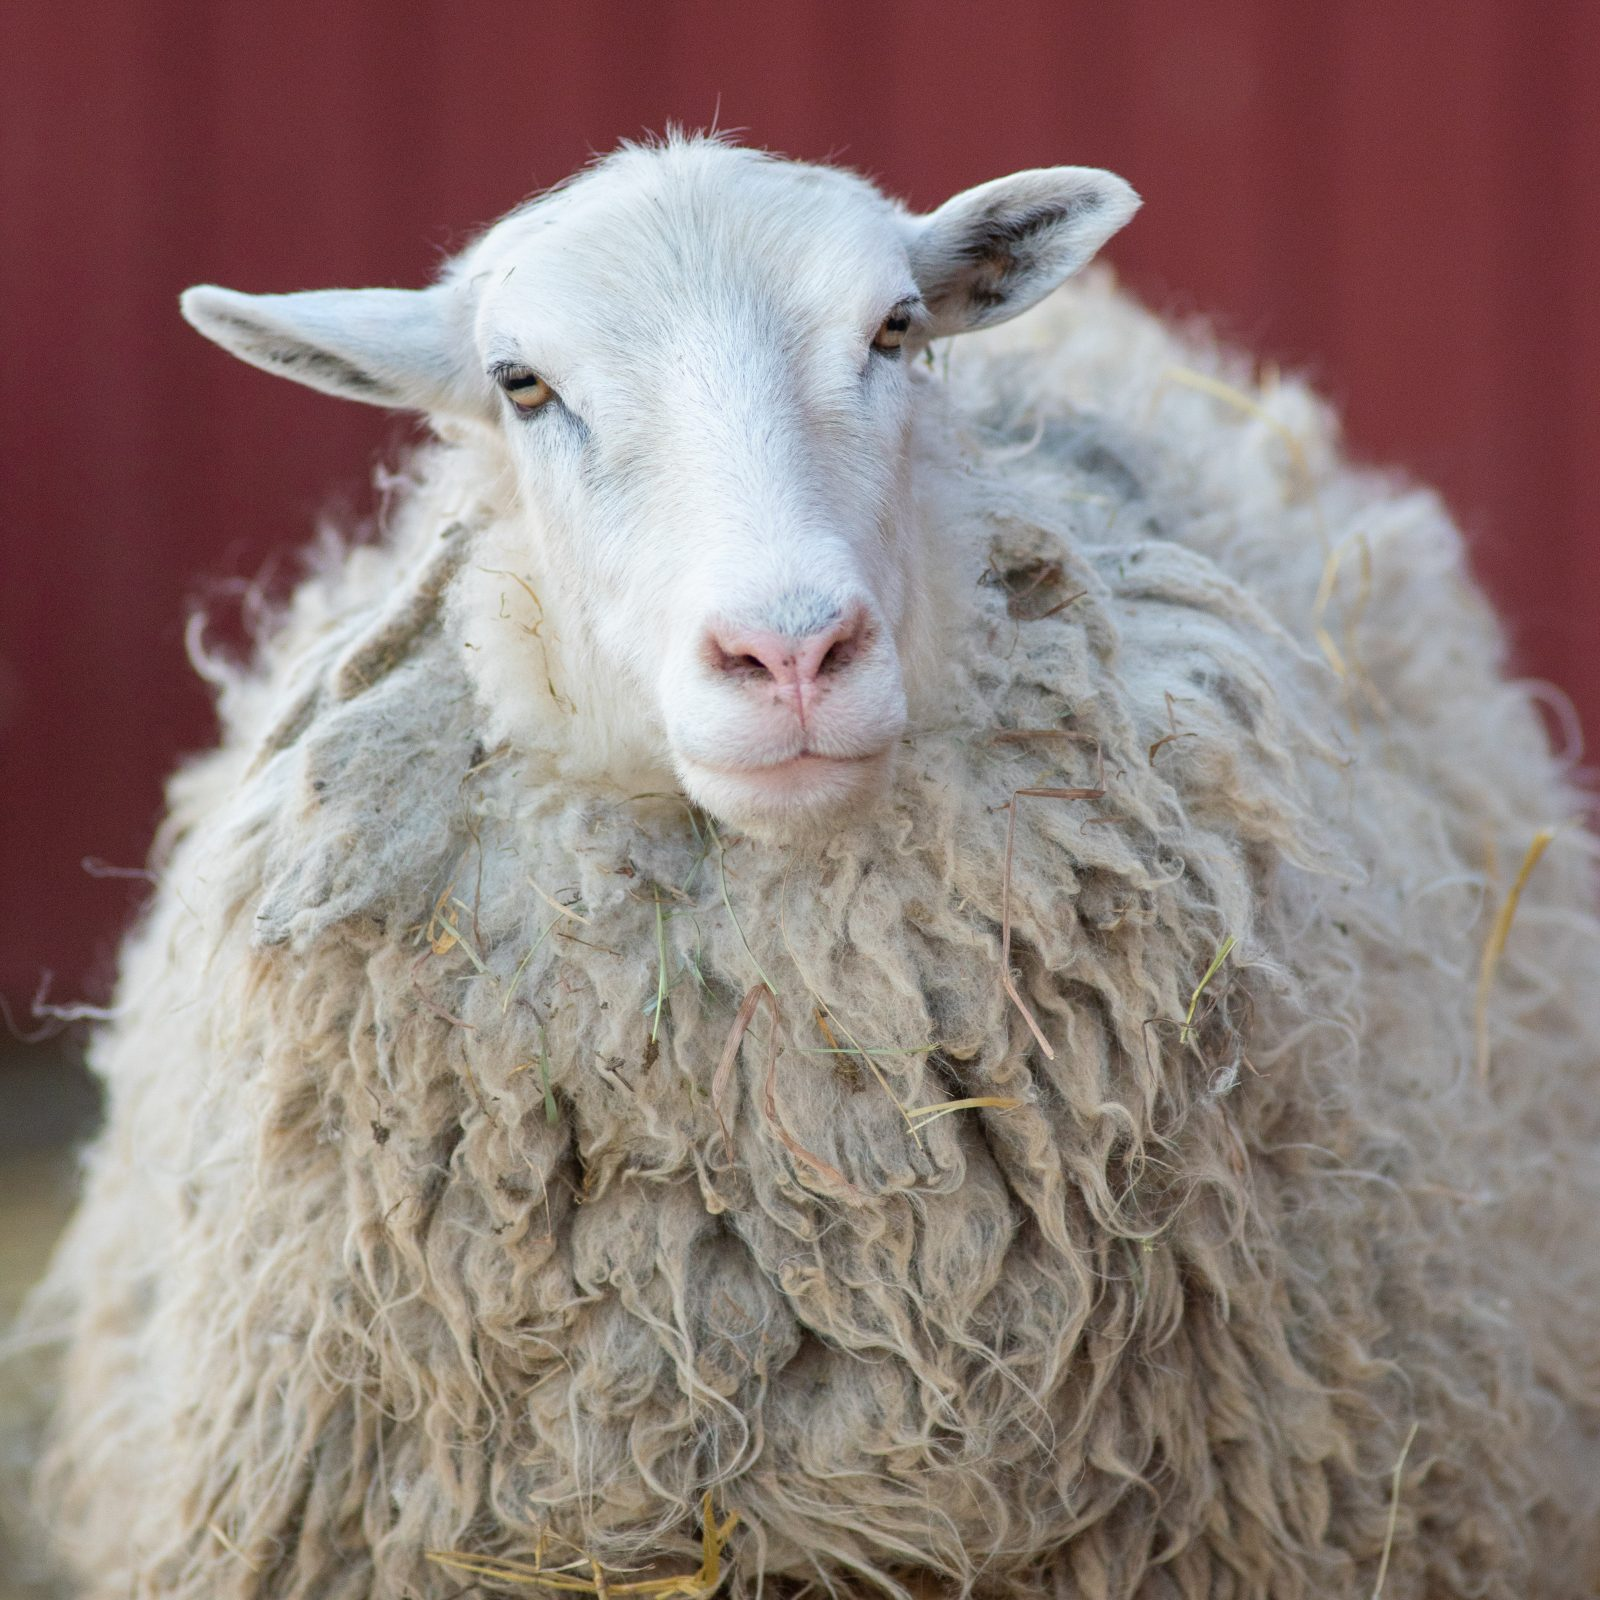 Ash sheep at Farm Sanctuary